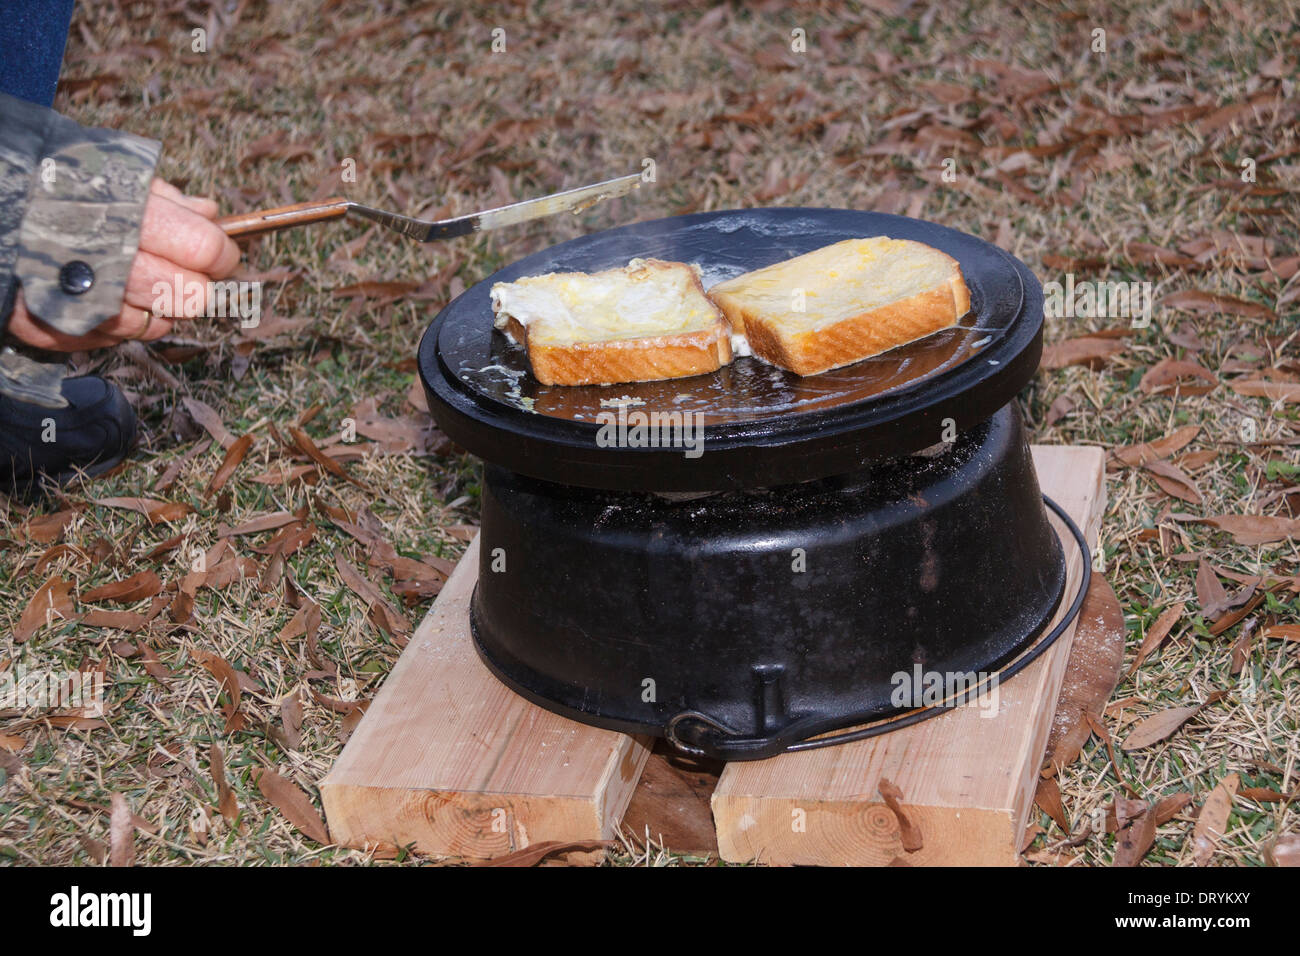 Cooking with cast iron dutch oven